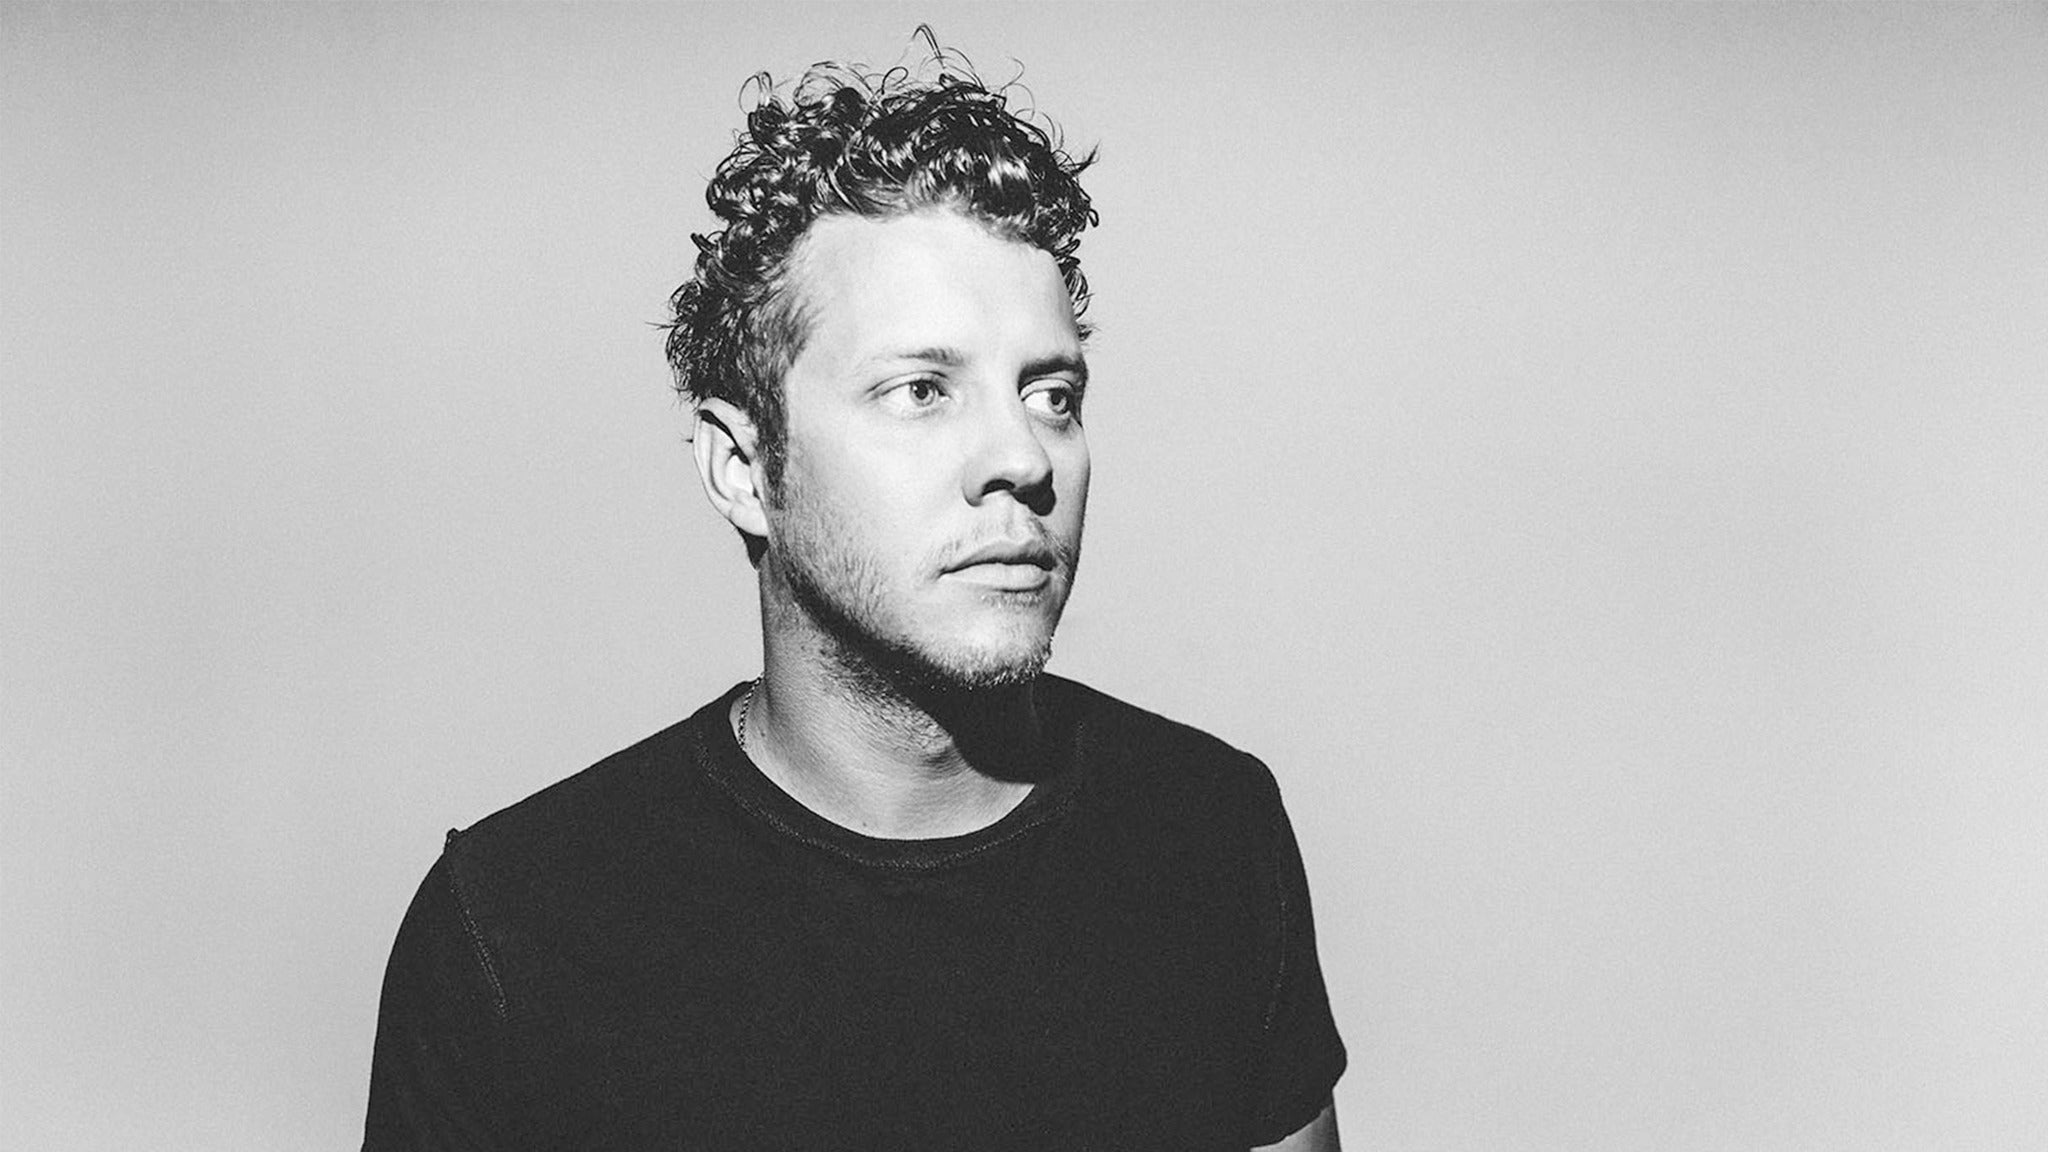 Anderson East at The Stone Pony - Asbury Park, NJ 07712